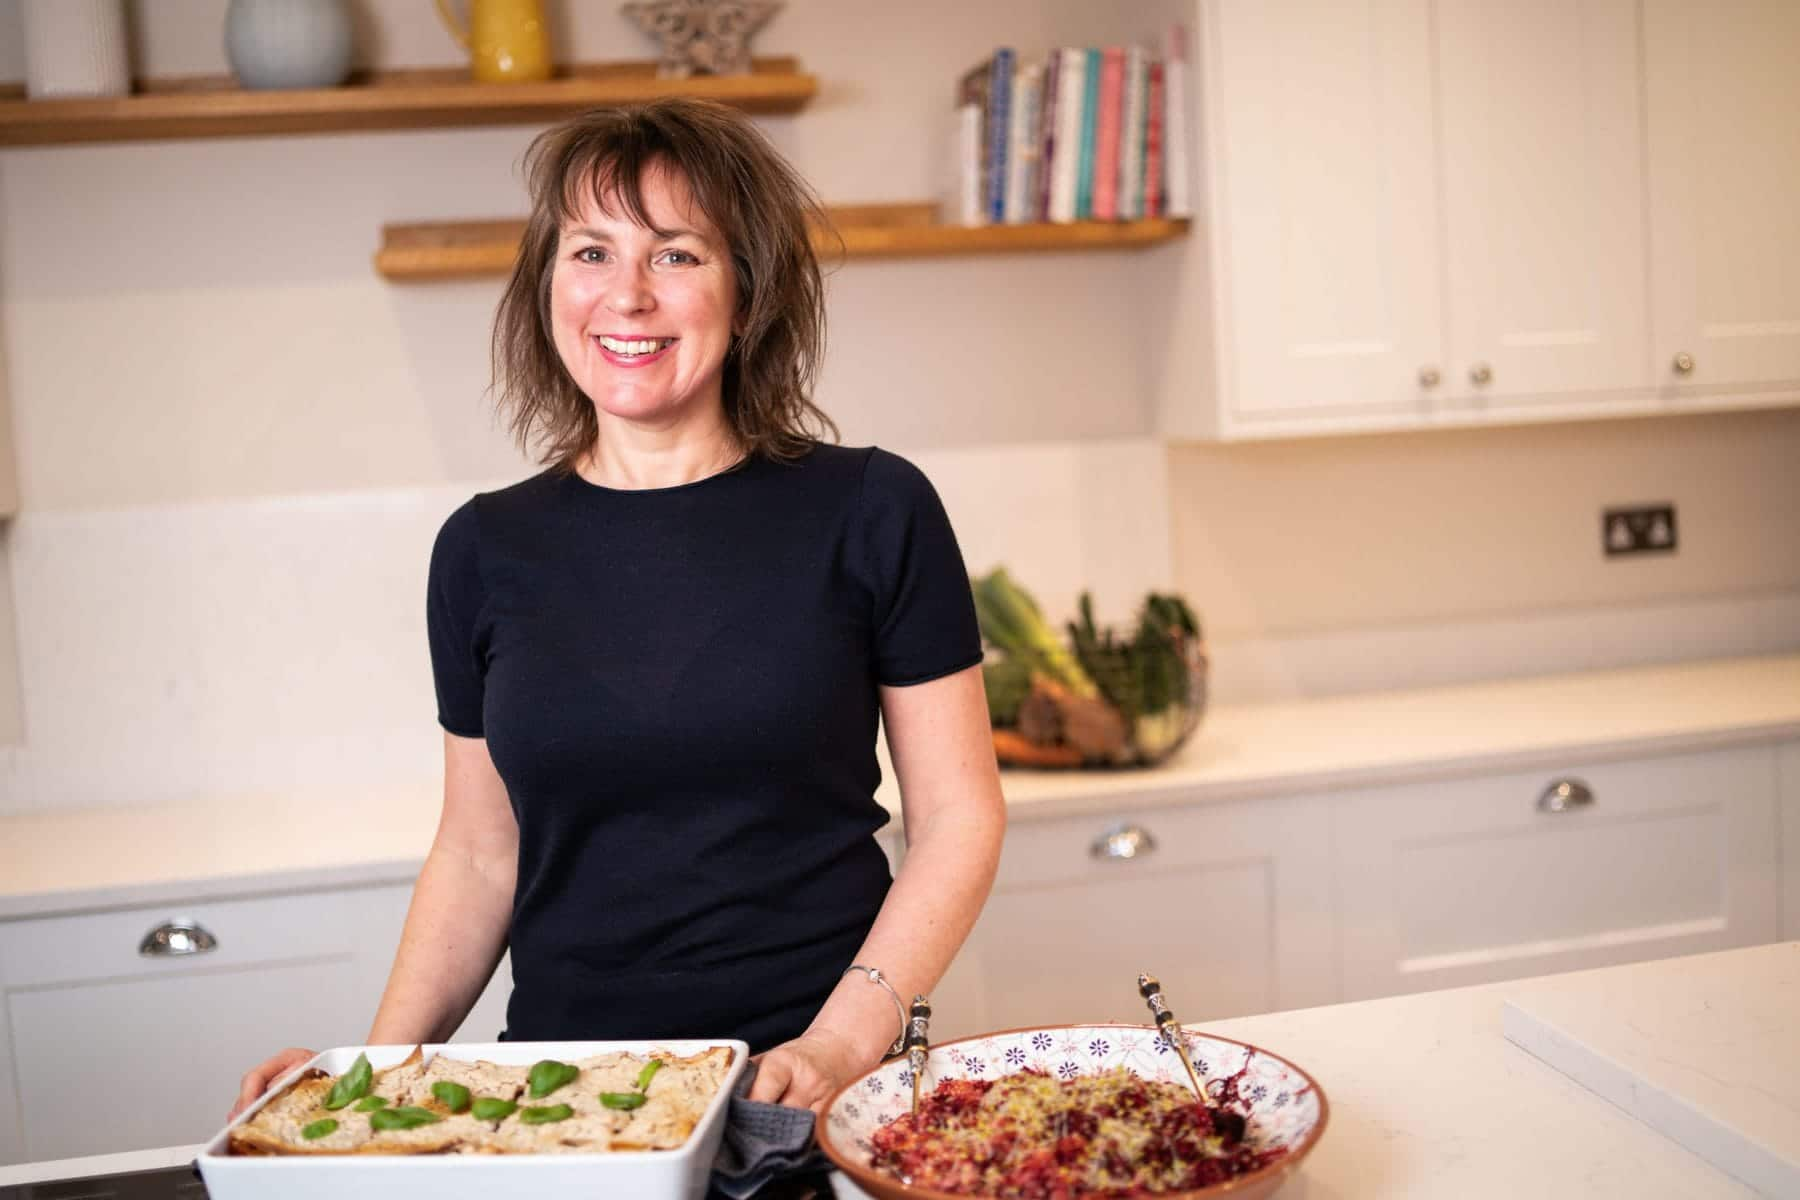 Gut Health Plan Kitchen with a healthy meal